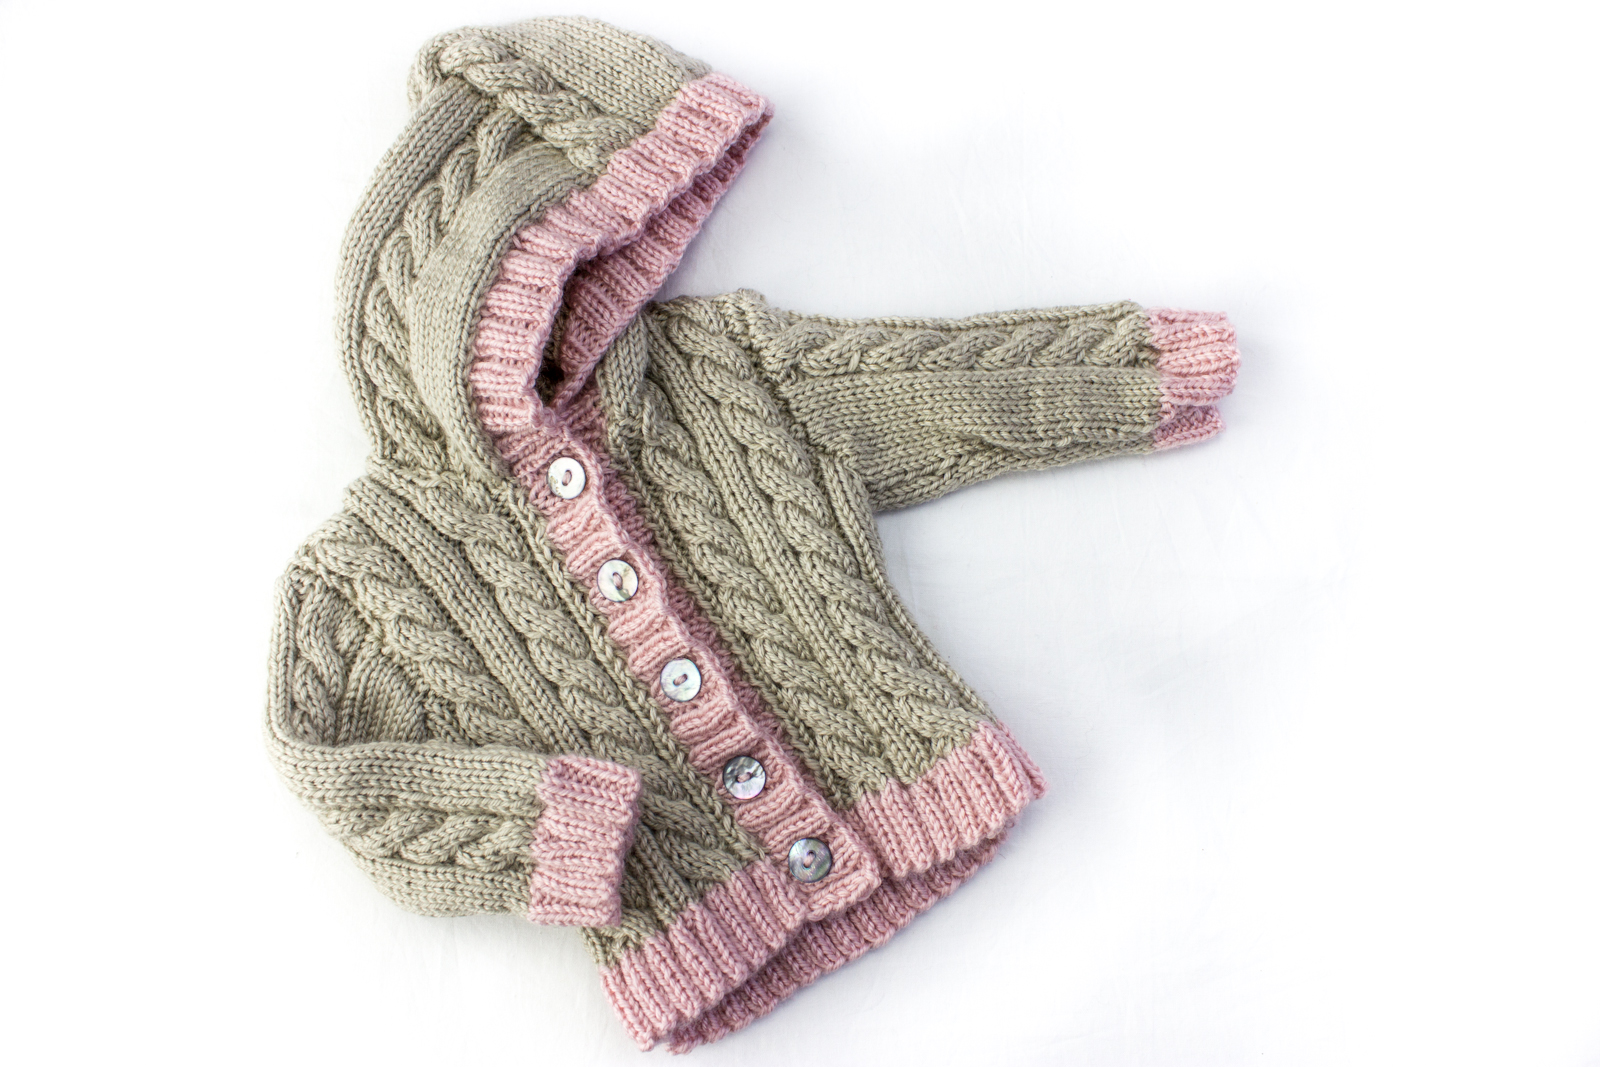 KNITTING PATTERN, Cable Cardigan, Optional Hood , 6 Sizes, Instant Download Pattern, Baby, Toddler, Kids Sizes, Unisex Cable Cardigan